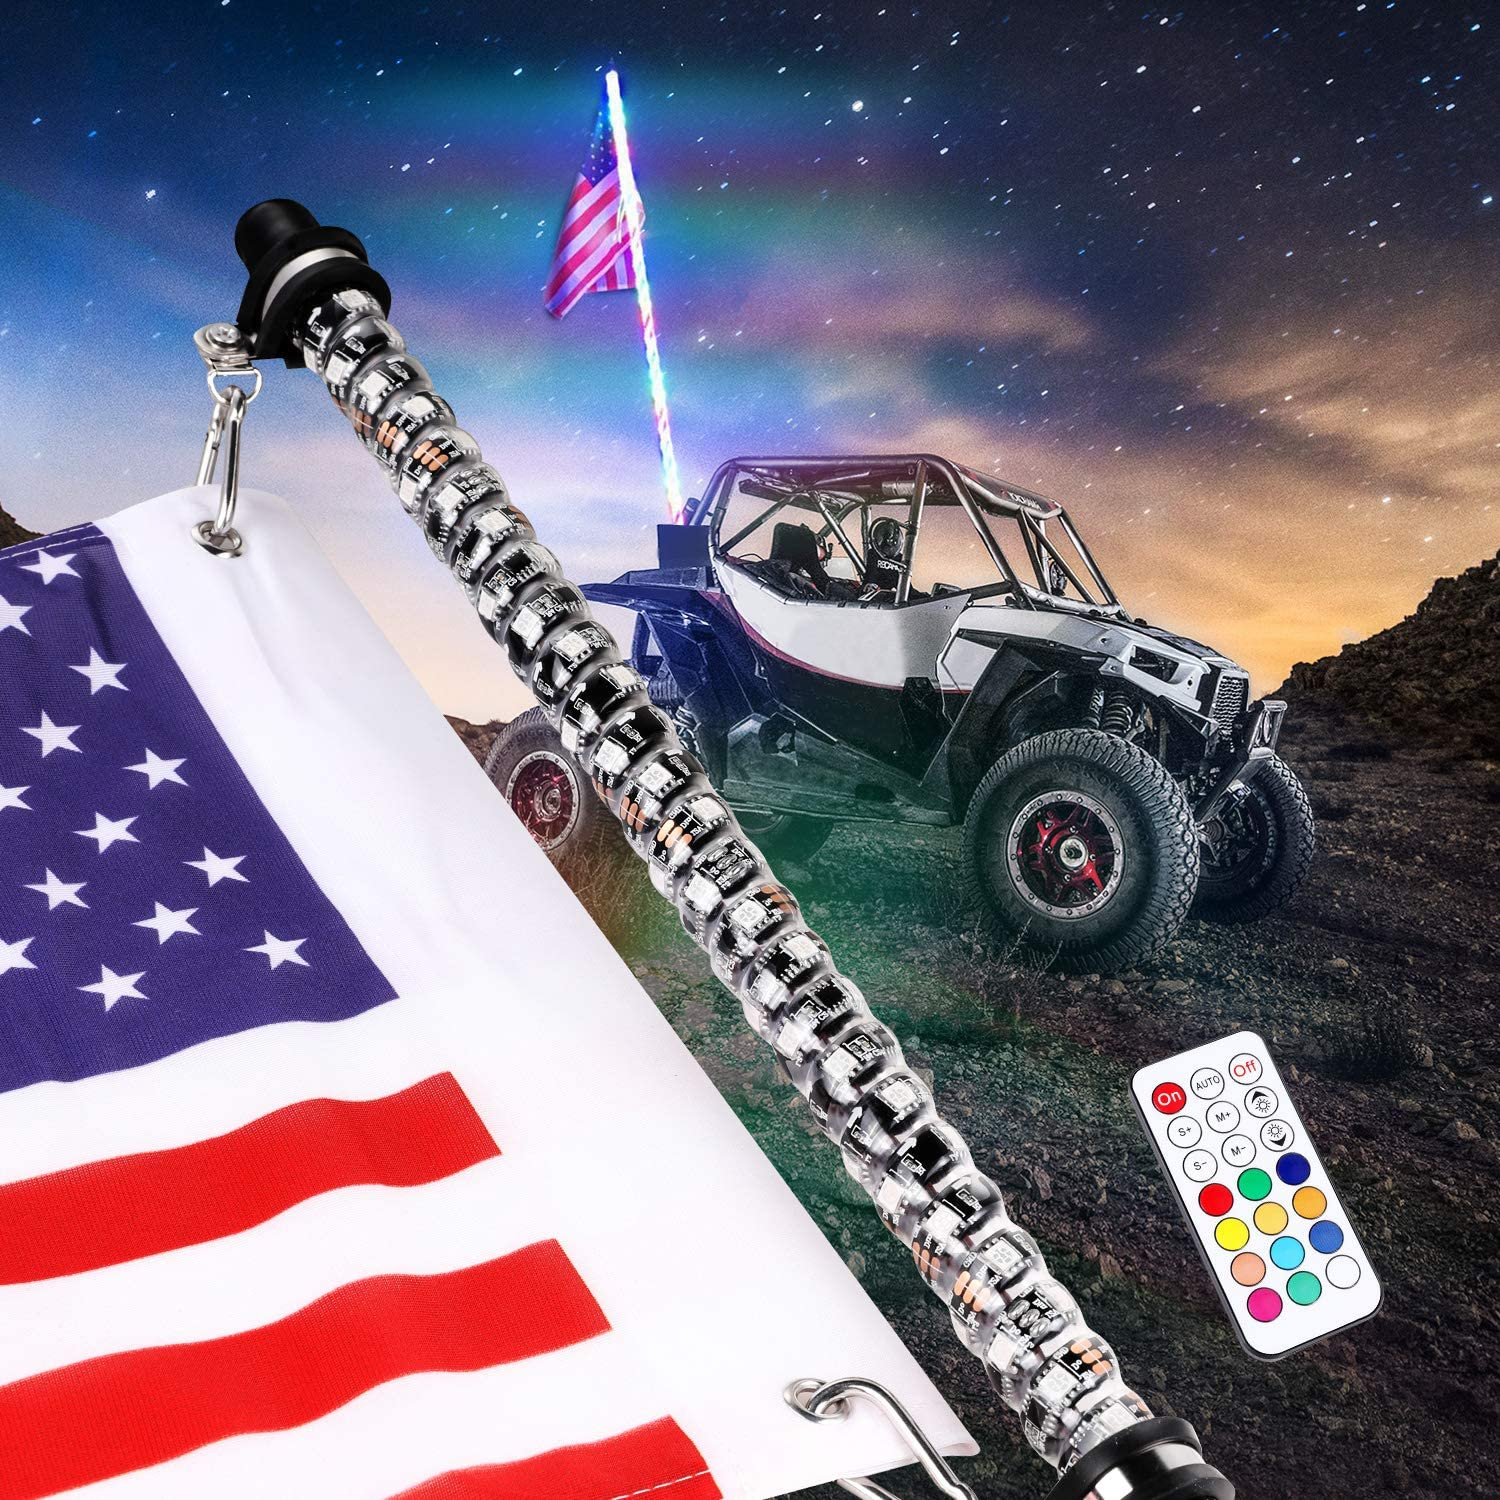 3FT Color LED Whip 360° Wrapped+Quick Release Base Remote Control for ATV//UTV US